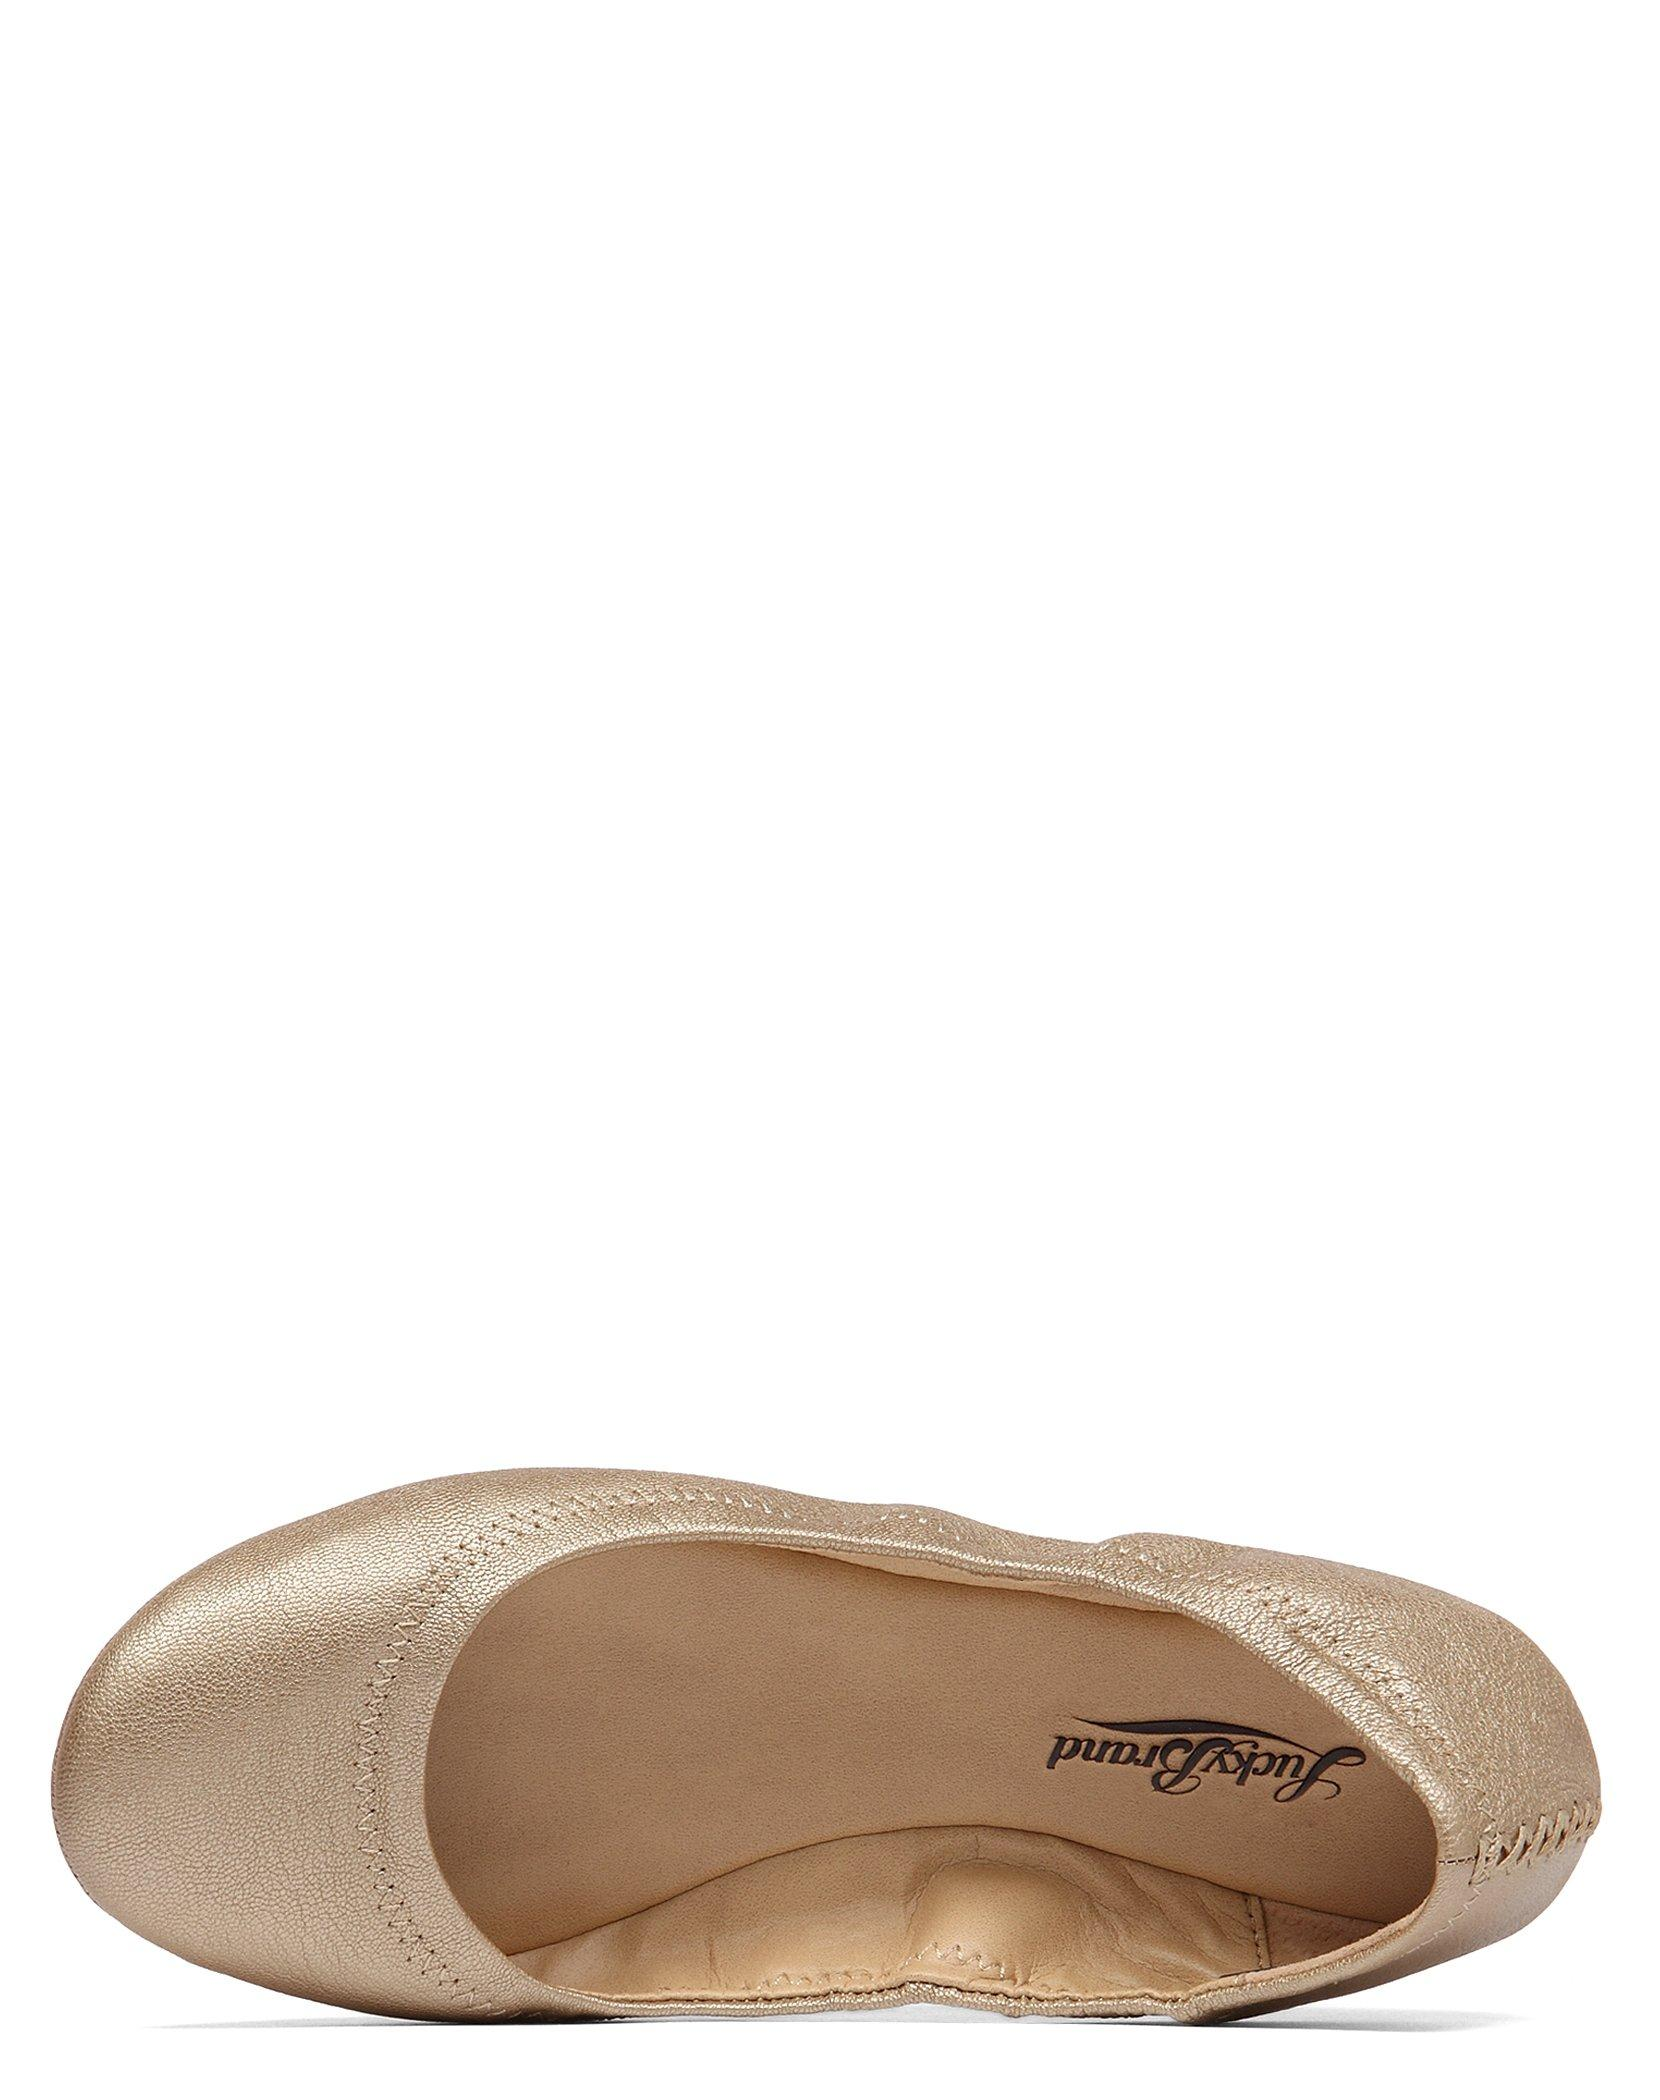 EMMIE LEATHER FLATS, image 7